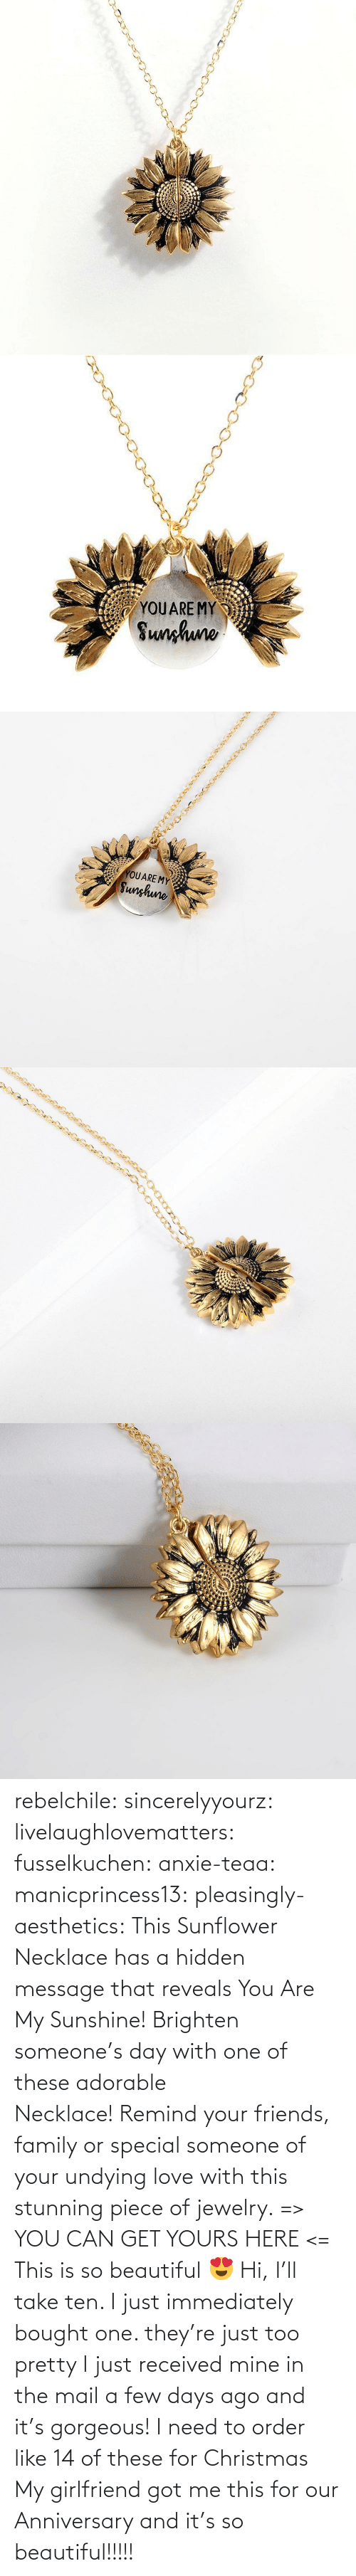 Brighten: rebelchile:  sincerelyyourz:  livelaughlovematters:  fusselkuchen:  anxie-teaa:   manicprincess13:   pleasingly-aesthetics:  This Sunflower Necklace has a hidden message that reveals You Are My Sunshine! Brighten someone's day with one of these adorable Necklace! Remind your friends, family or special someone of your undying love with this stunning piece of jewelry. => YOU CAN GET YOURS HERE <=   This is so beautiful 😍    Hi, I'll take ten.    I just immediately bought one. they're just too pretty   I just received mine in the mail a few days ago and it's gorgeous!   I need to order like 14 of these for Christmas    My girlfriend got me this for our Anniversary and it's so beautiful!!!!!